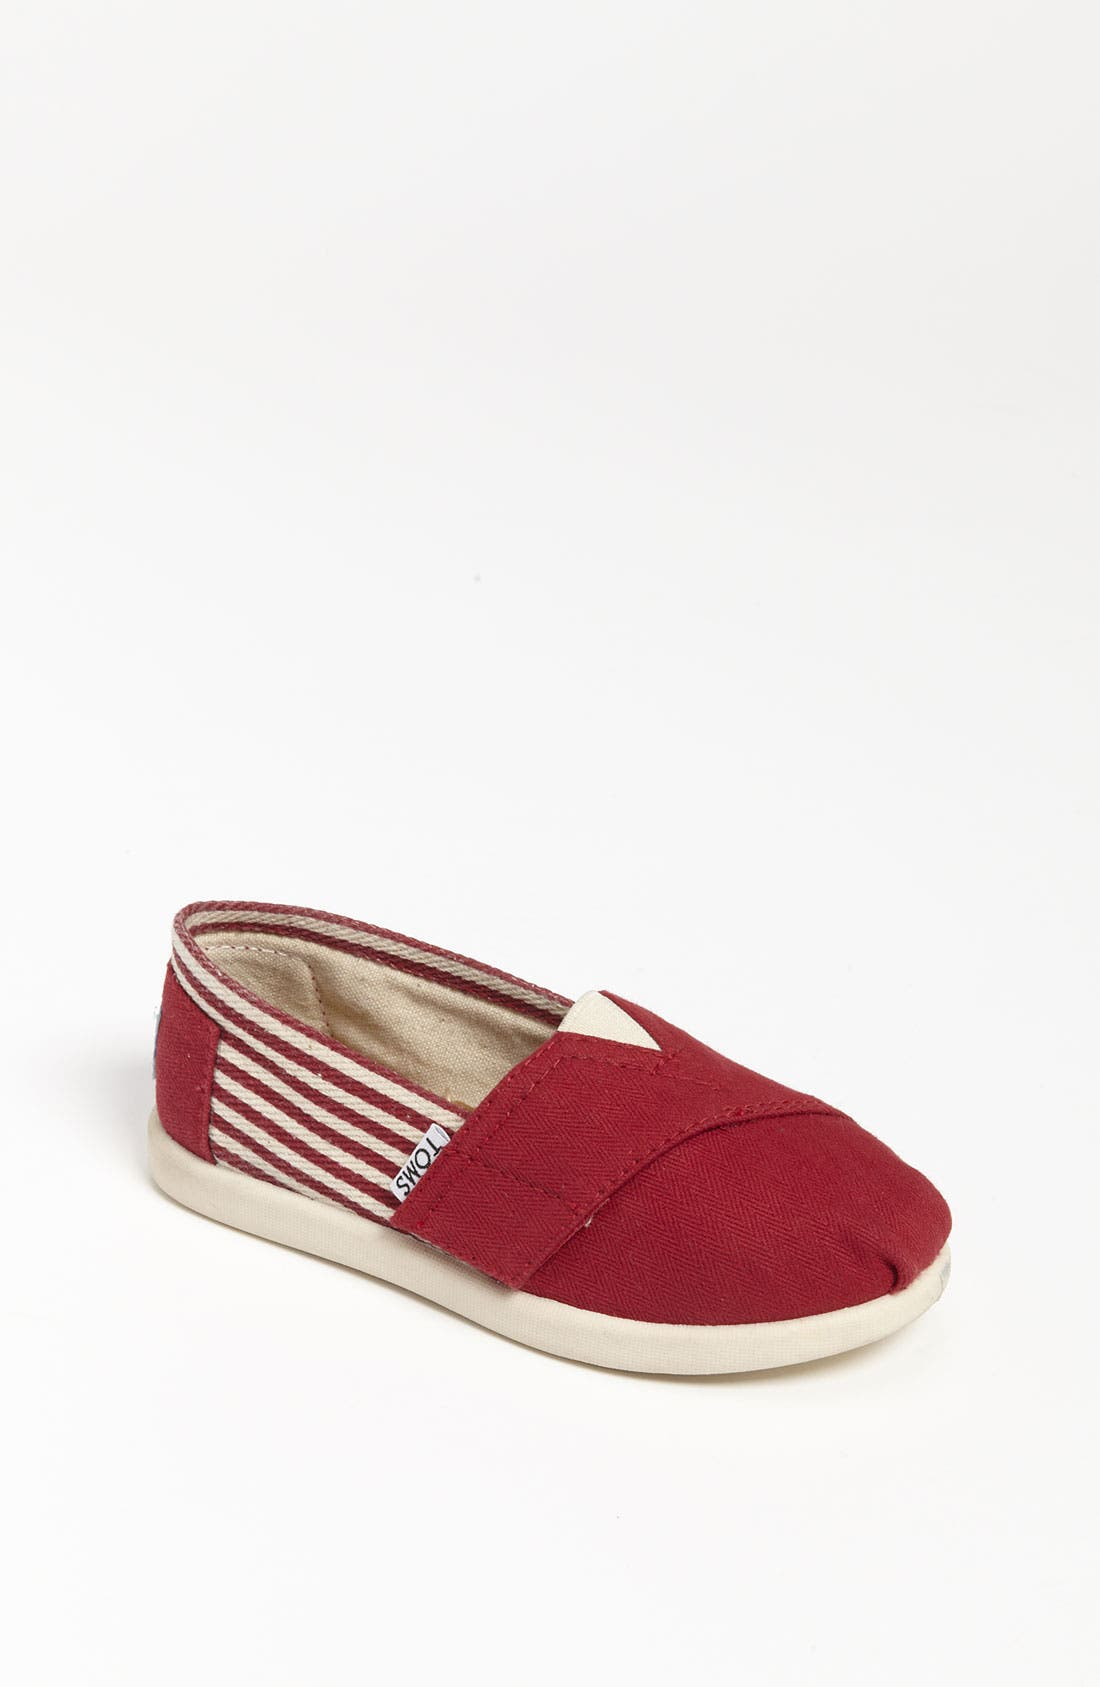 Main Image - TOMS 'Classic Tiny - University' Slip-On (Baby, Walker & Toddler) (Nordstrom Exclusive)